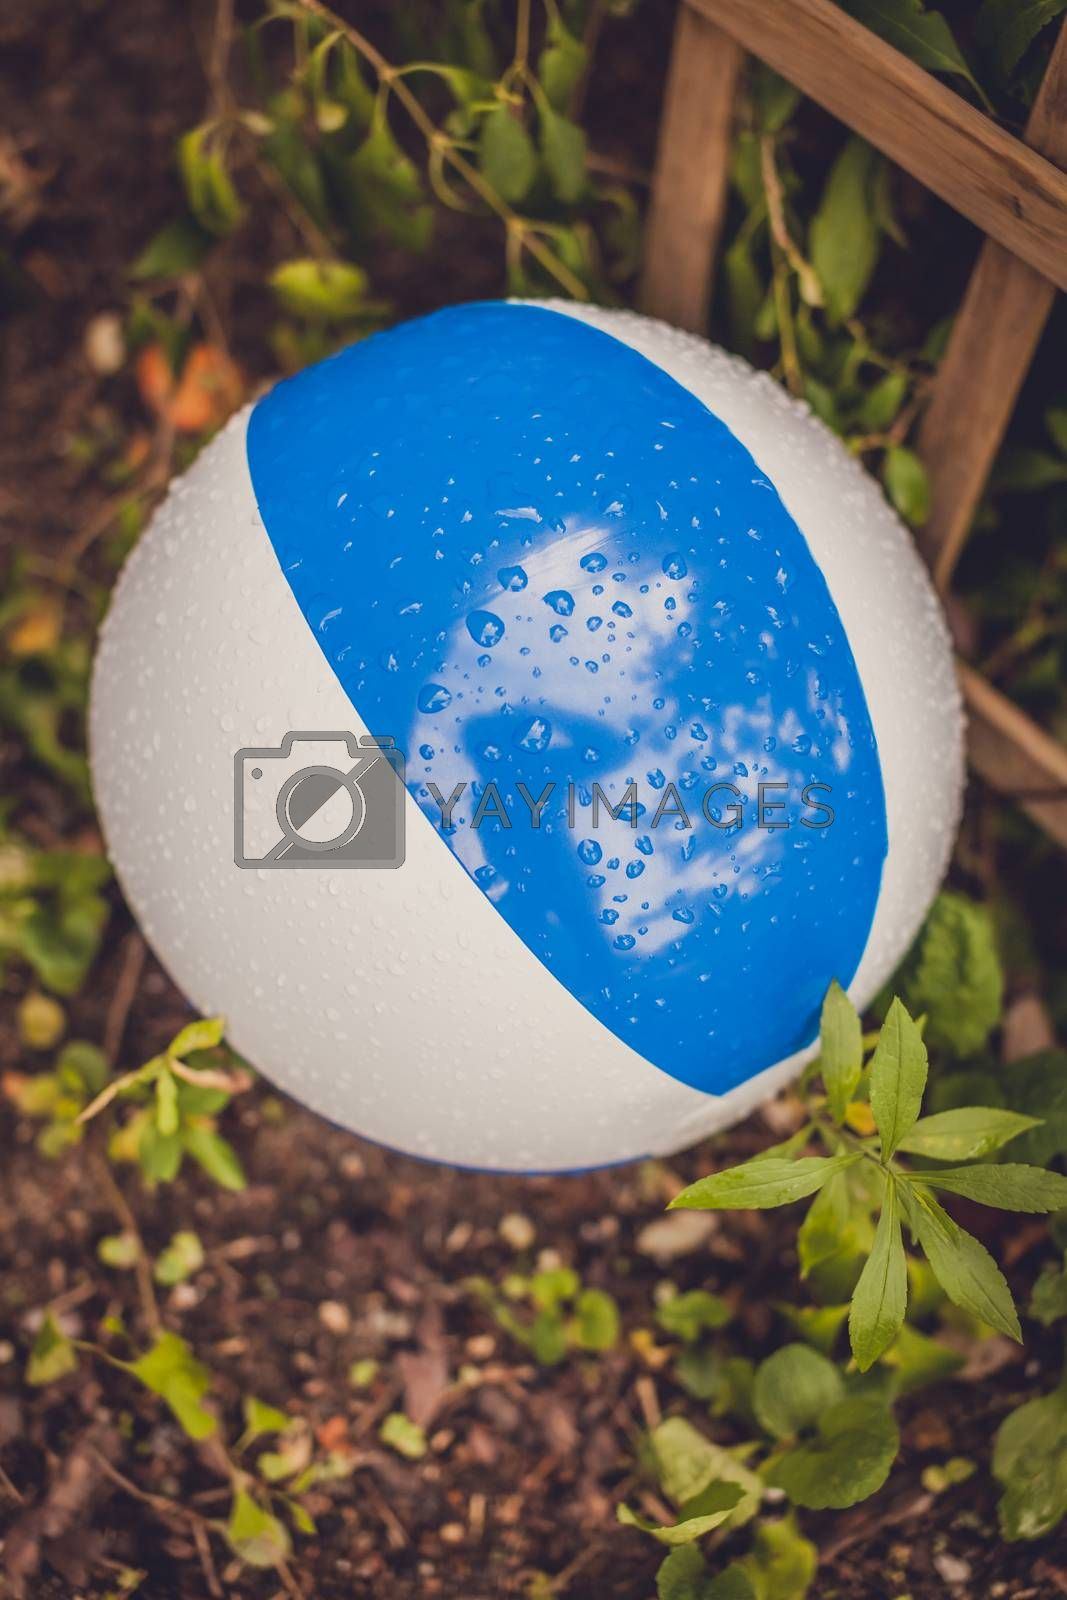 Big colorful inflatable ball wet after rain on the ground in the garden